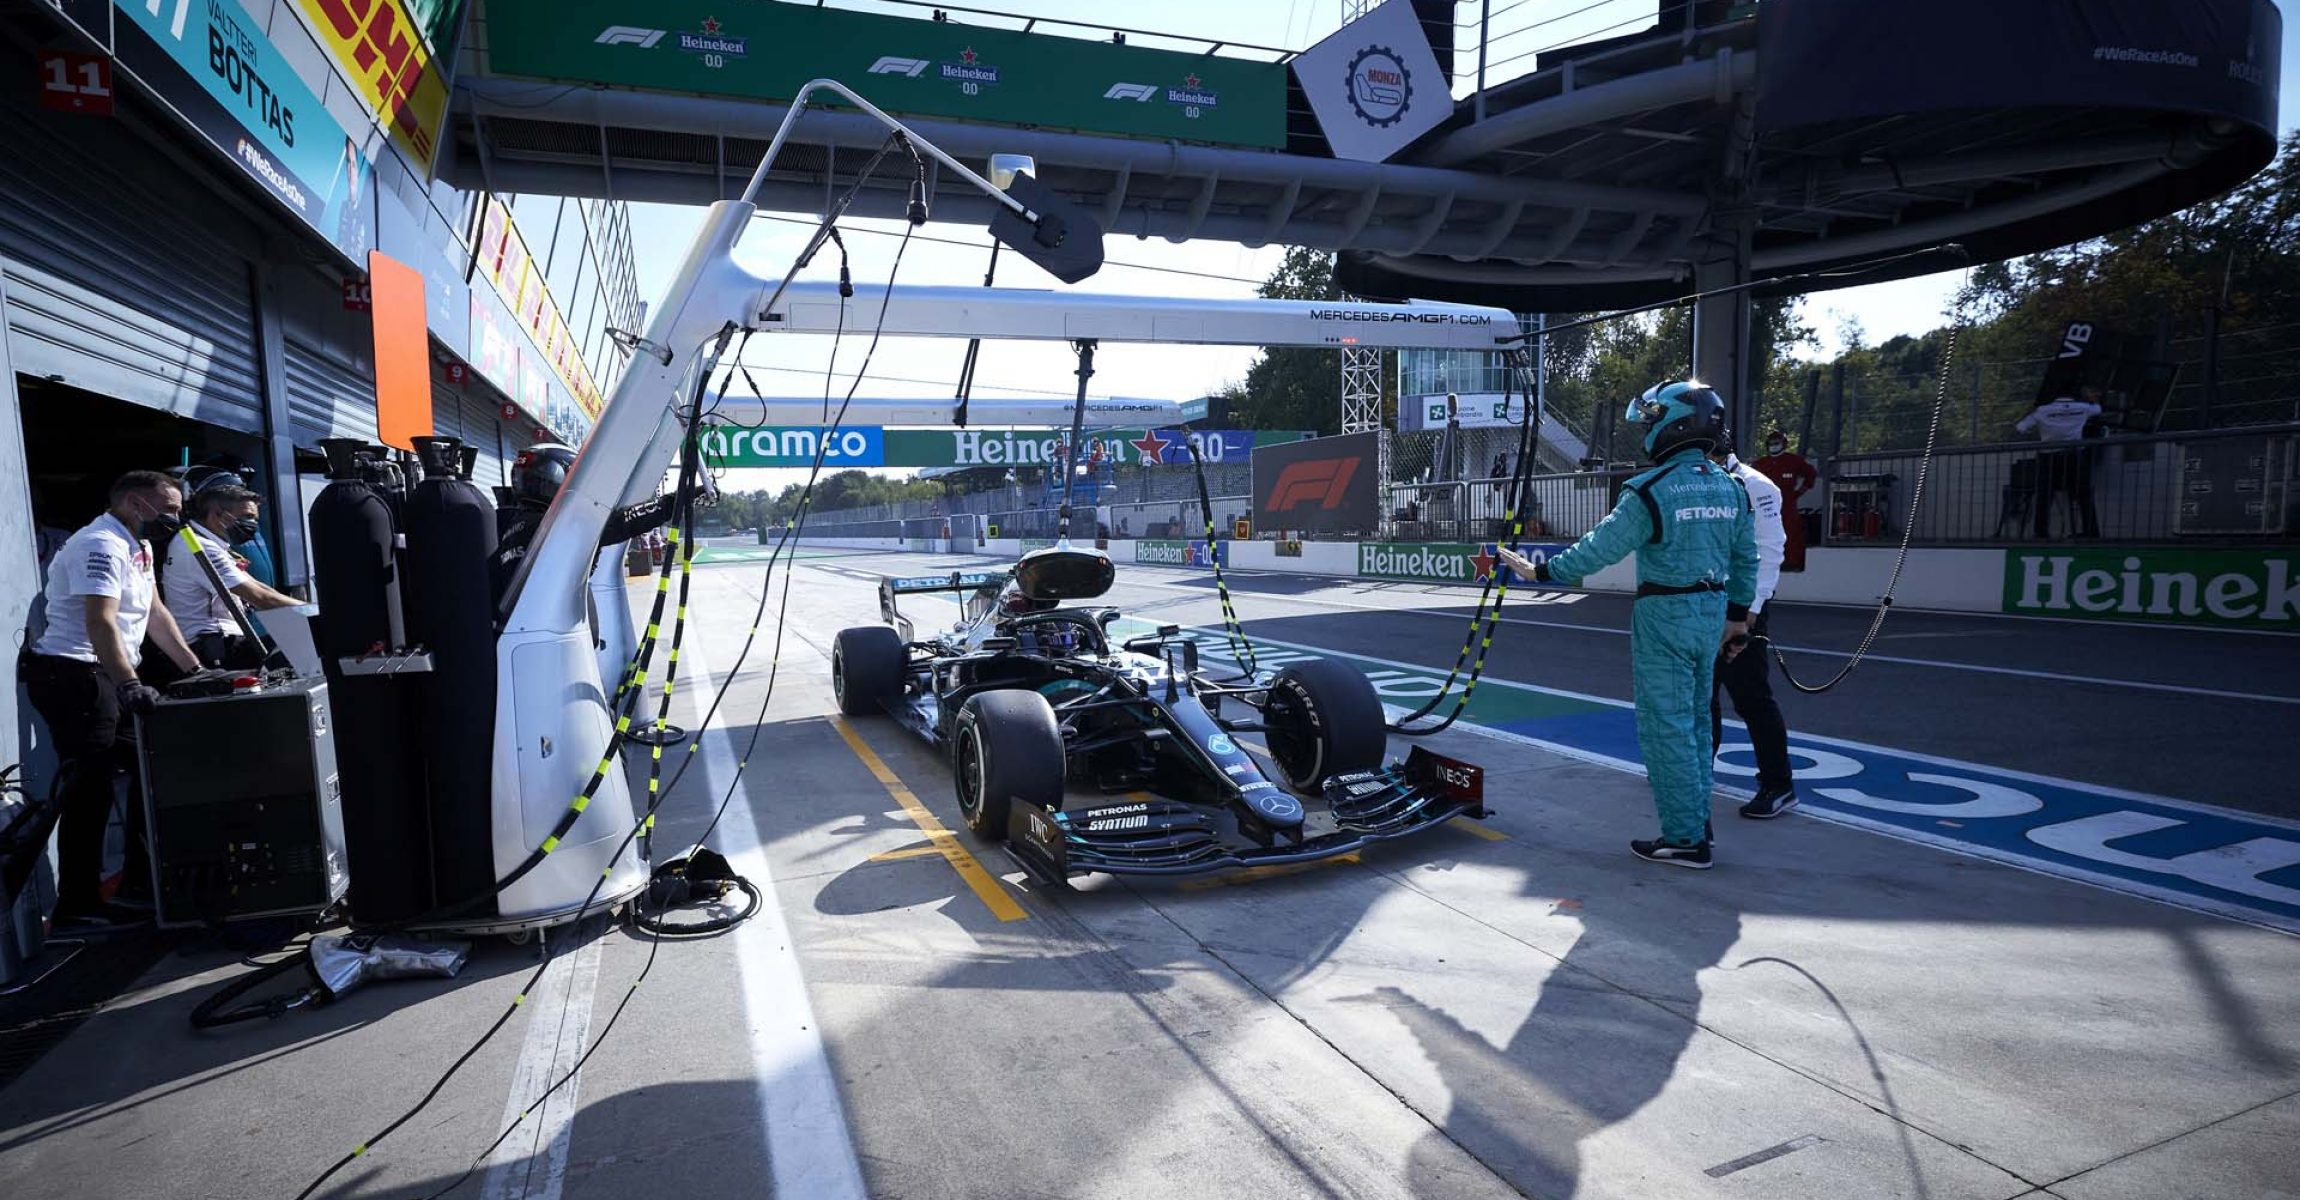 2020 Italian Grand Prix, Sunday - Steve Etherington Lewis Hamilton Mercedes 10 seconds stop-and-go penalty